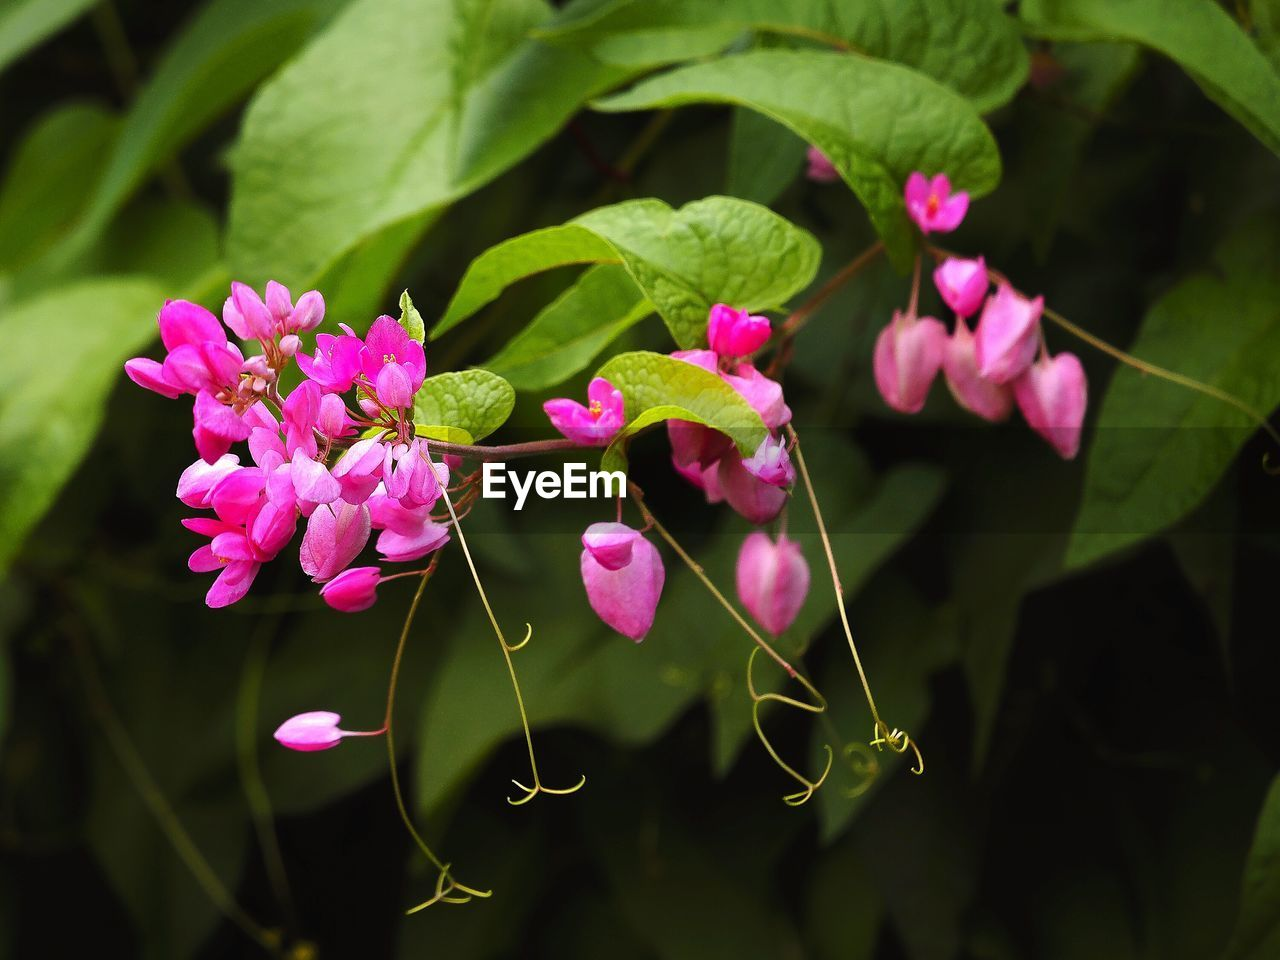 Close-Up Of Pink Flowers Growing On Plant